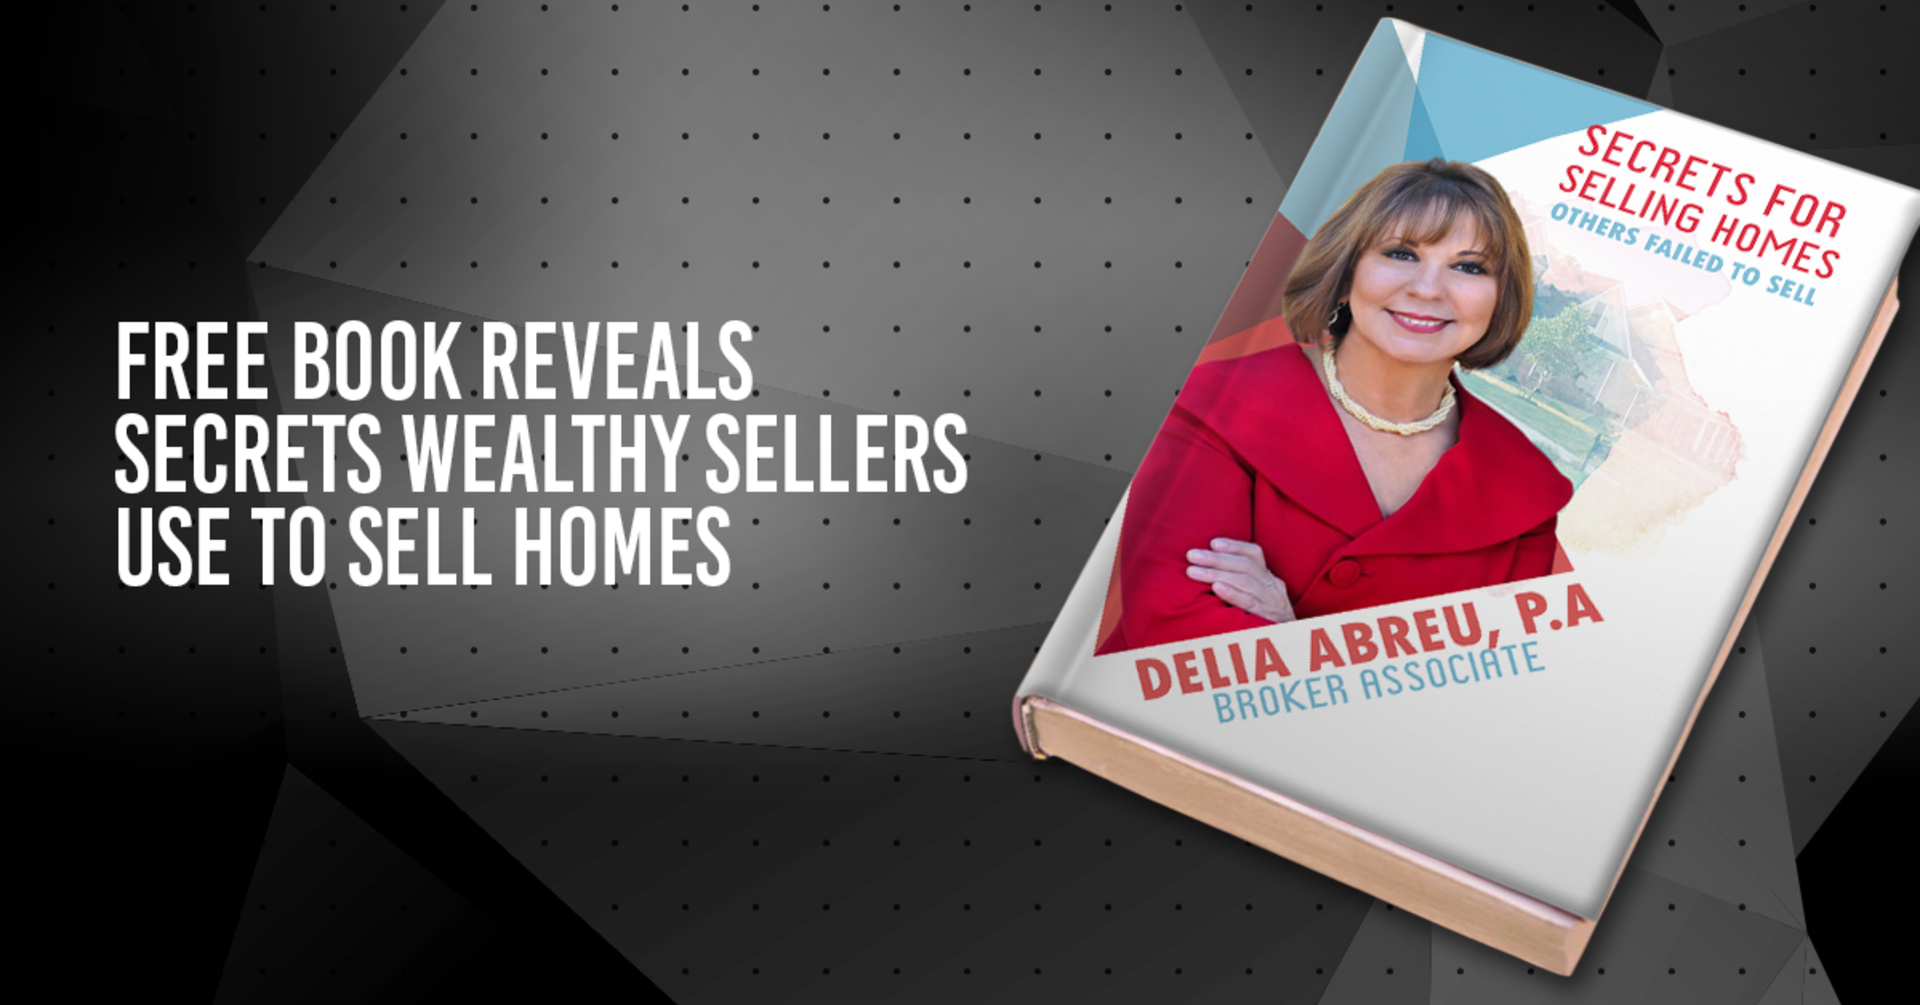 """Free """"Secrets for Selling Homes Other Failed to Sell"""" guide by Delia Abreu, PA"""